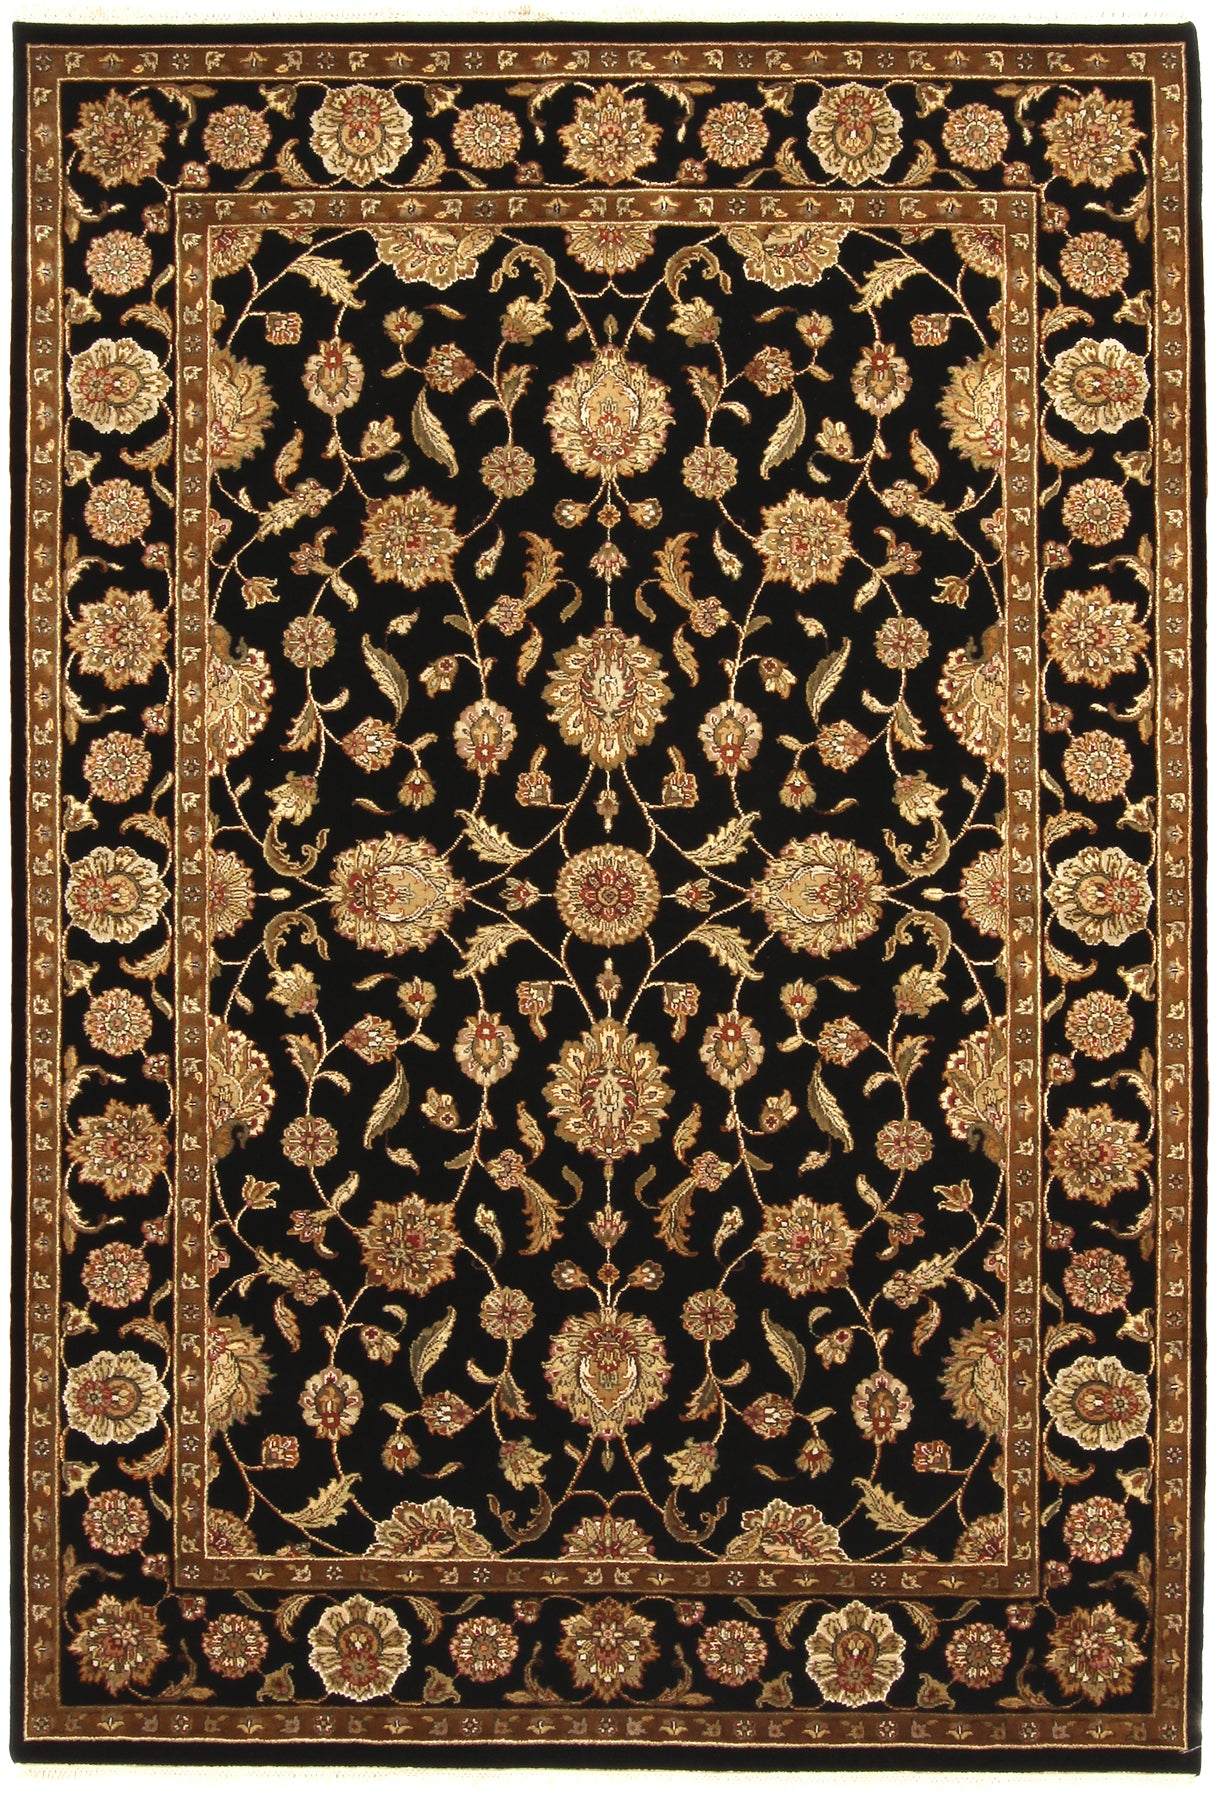 Indo-Persian Rug Black Gold